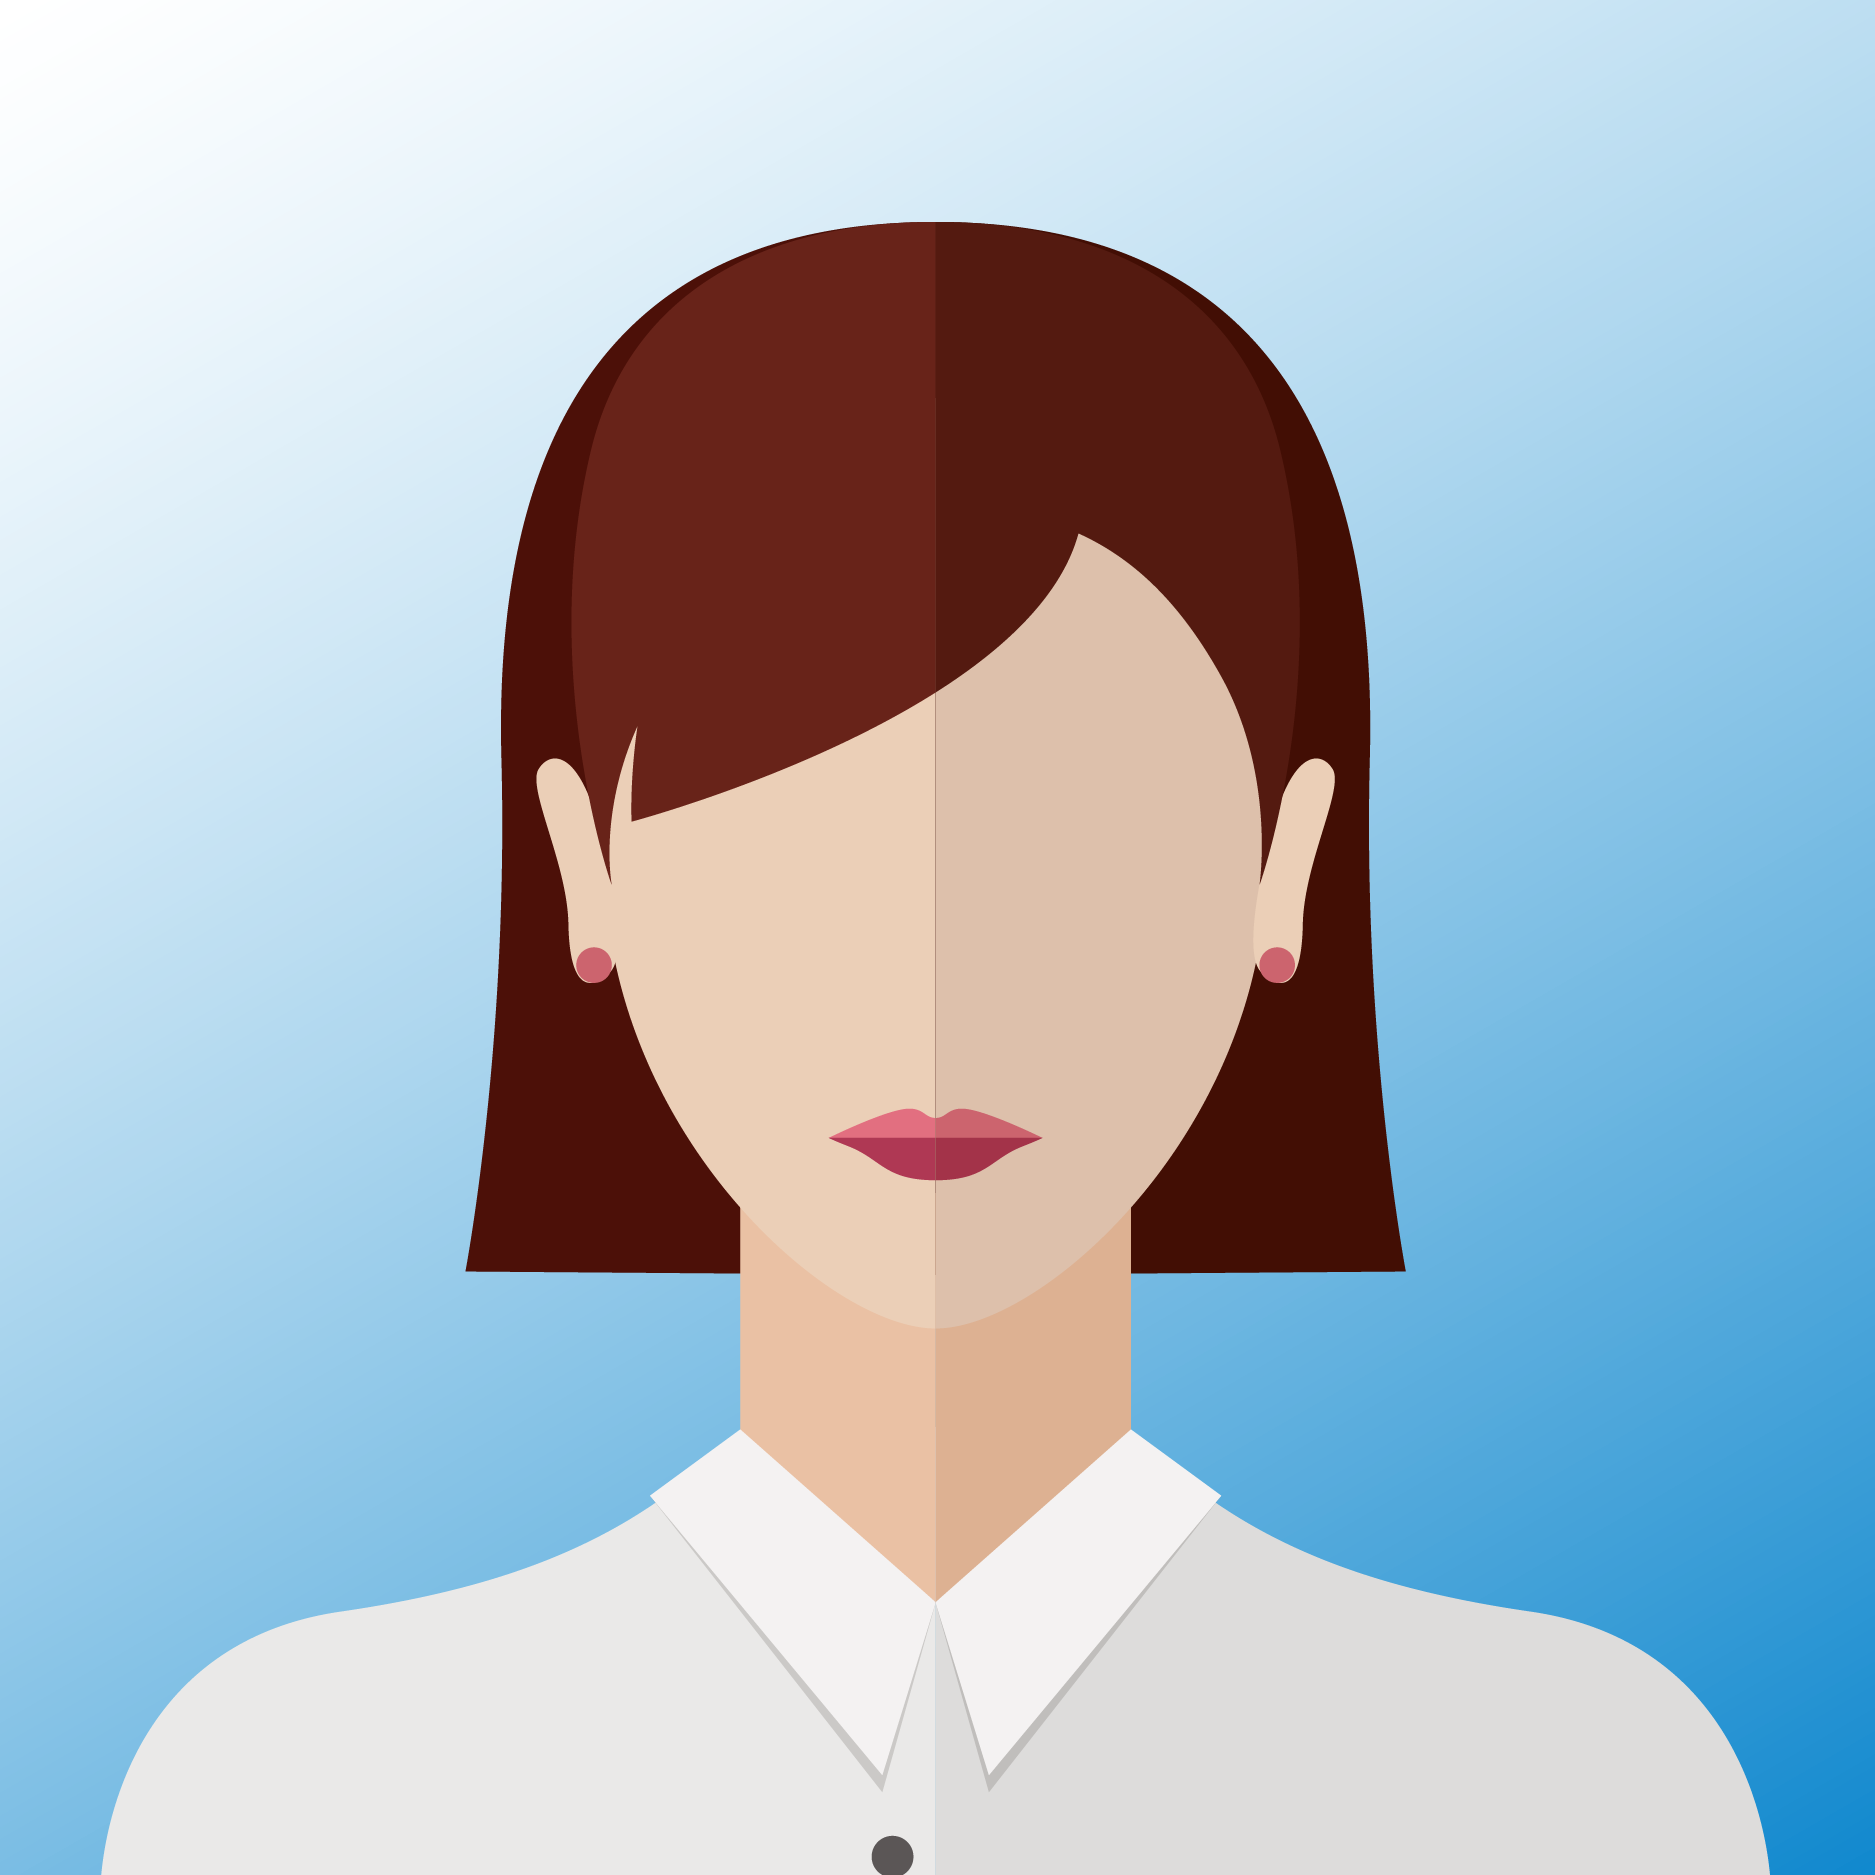 vector of woman with brown hair